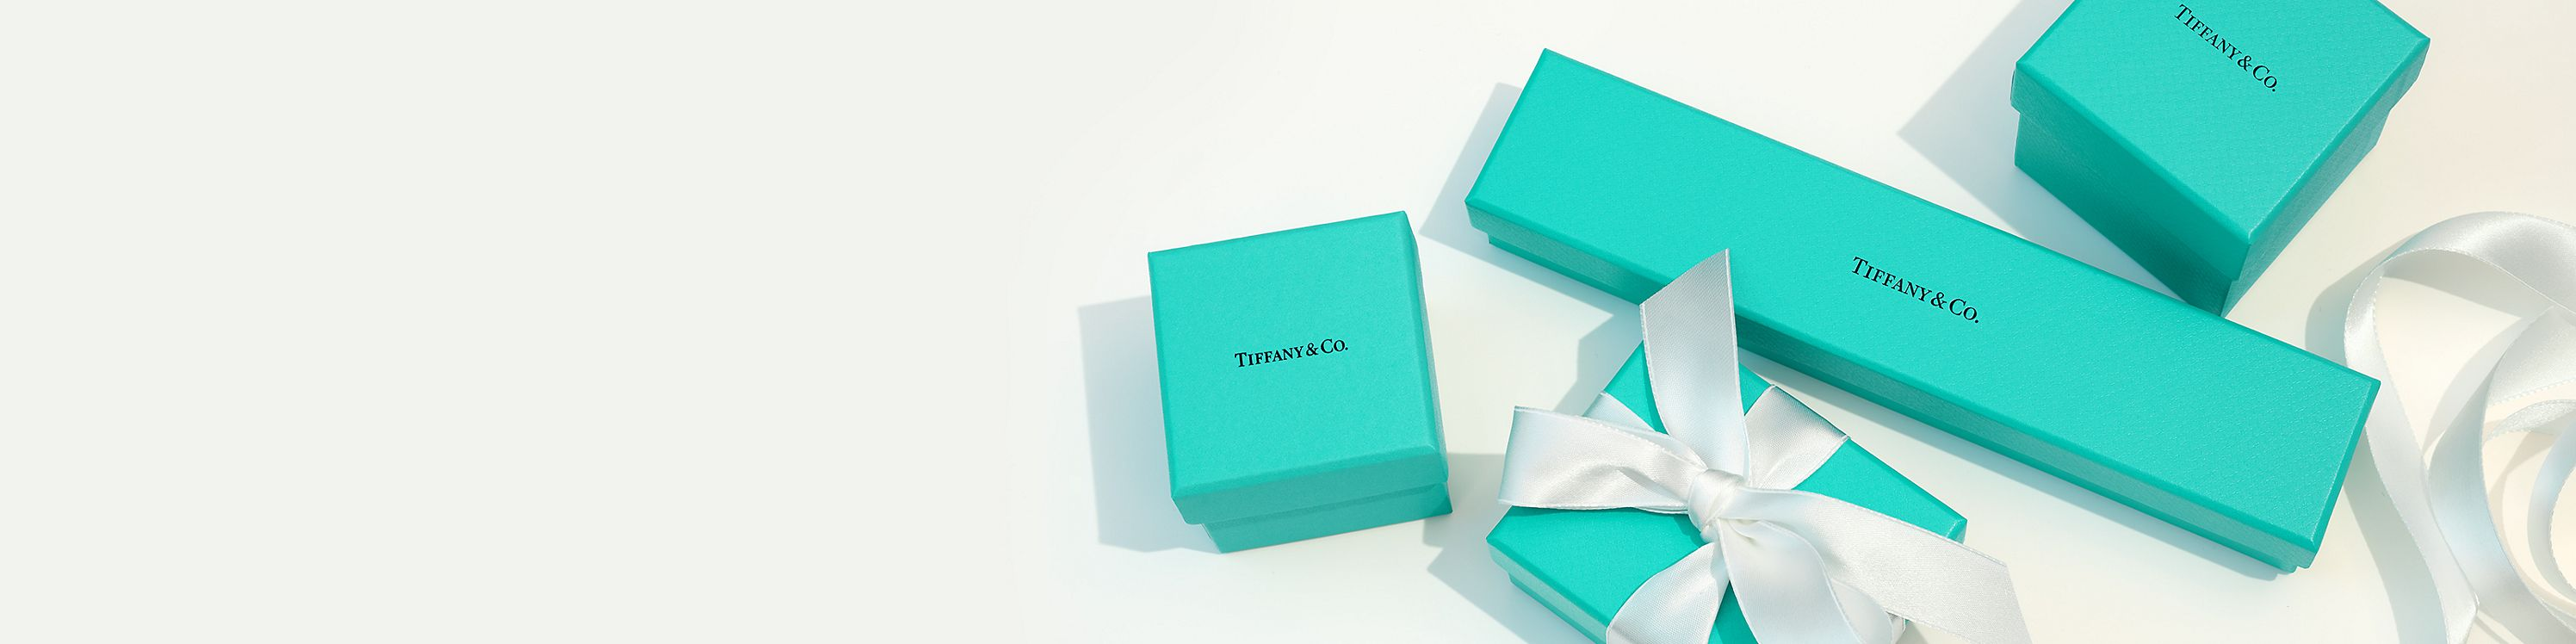 Regalos para la novia de Tiffany & Co.